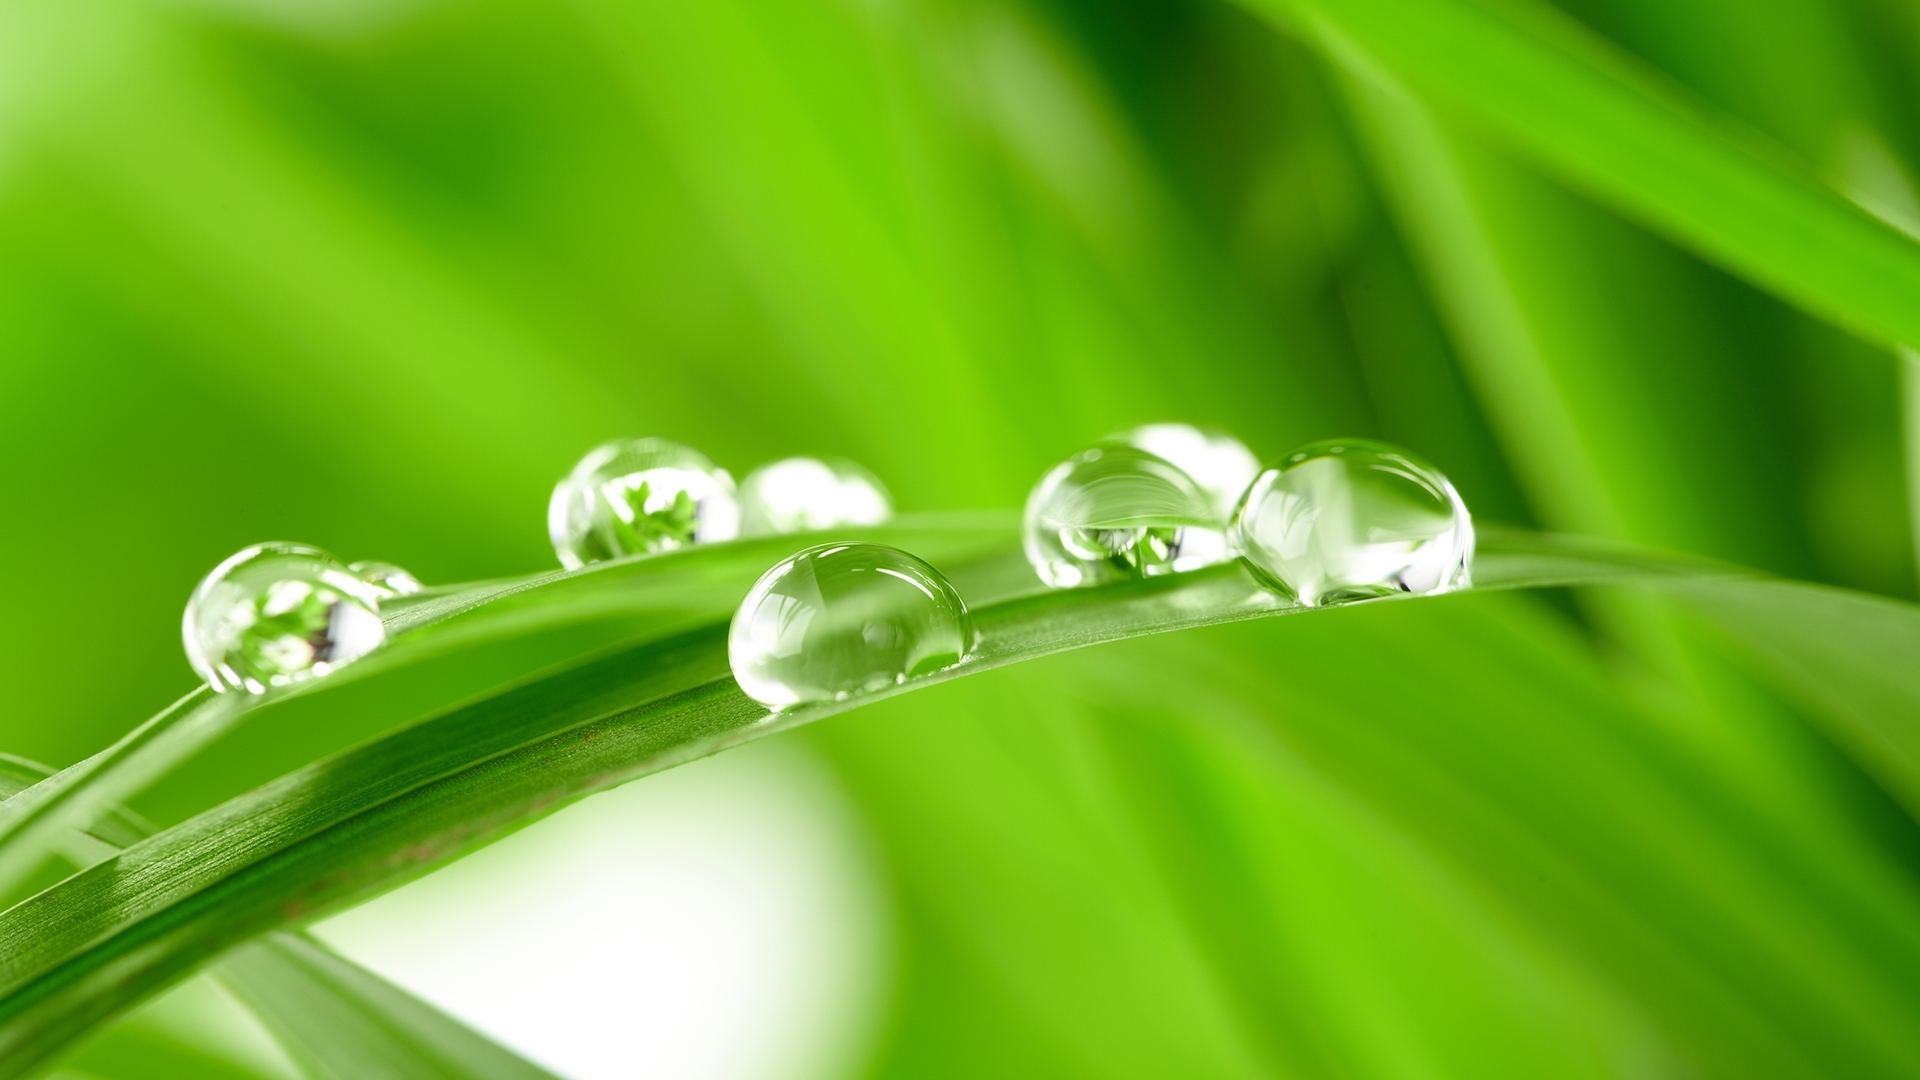 26108 download wallpaper Plants, Grass, Background, Drops screensavers and pictures for free